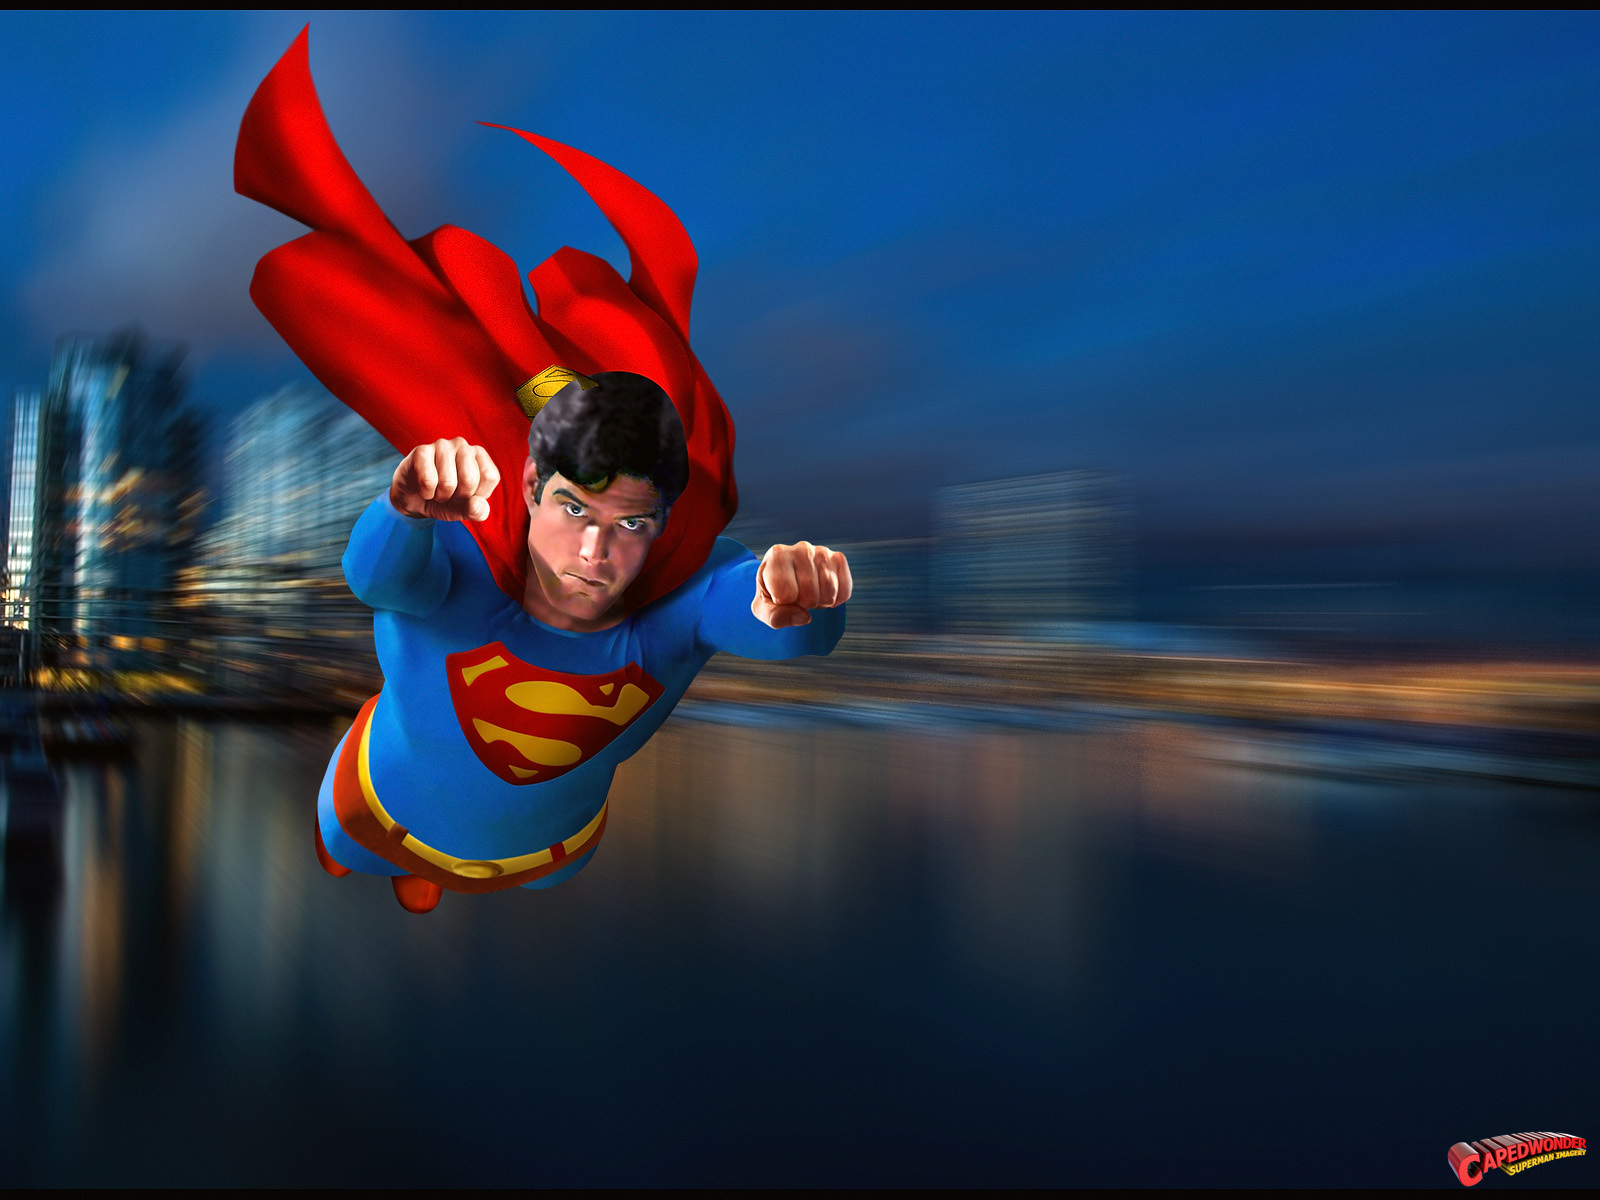 Superman   Superman The Movie Wallpaper 20439315 1600x1200